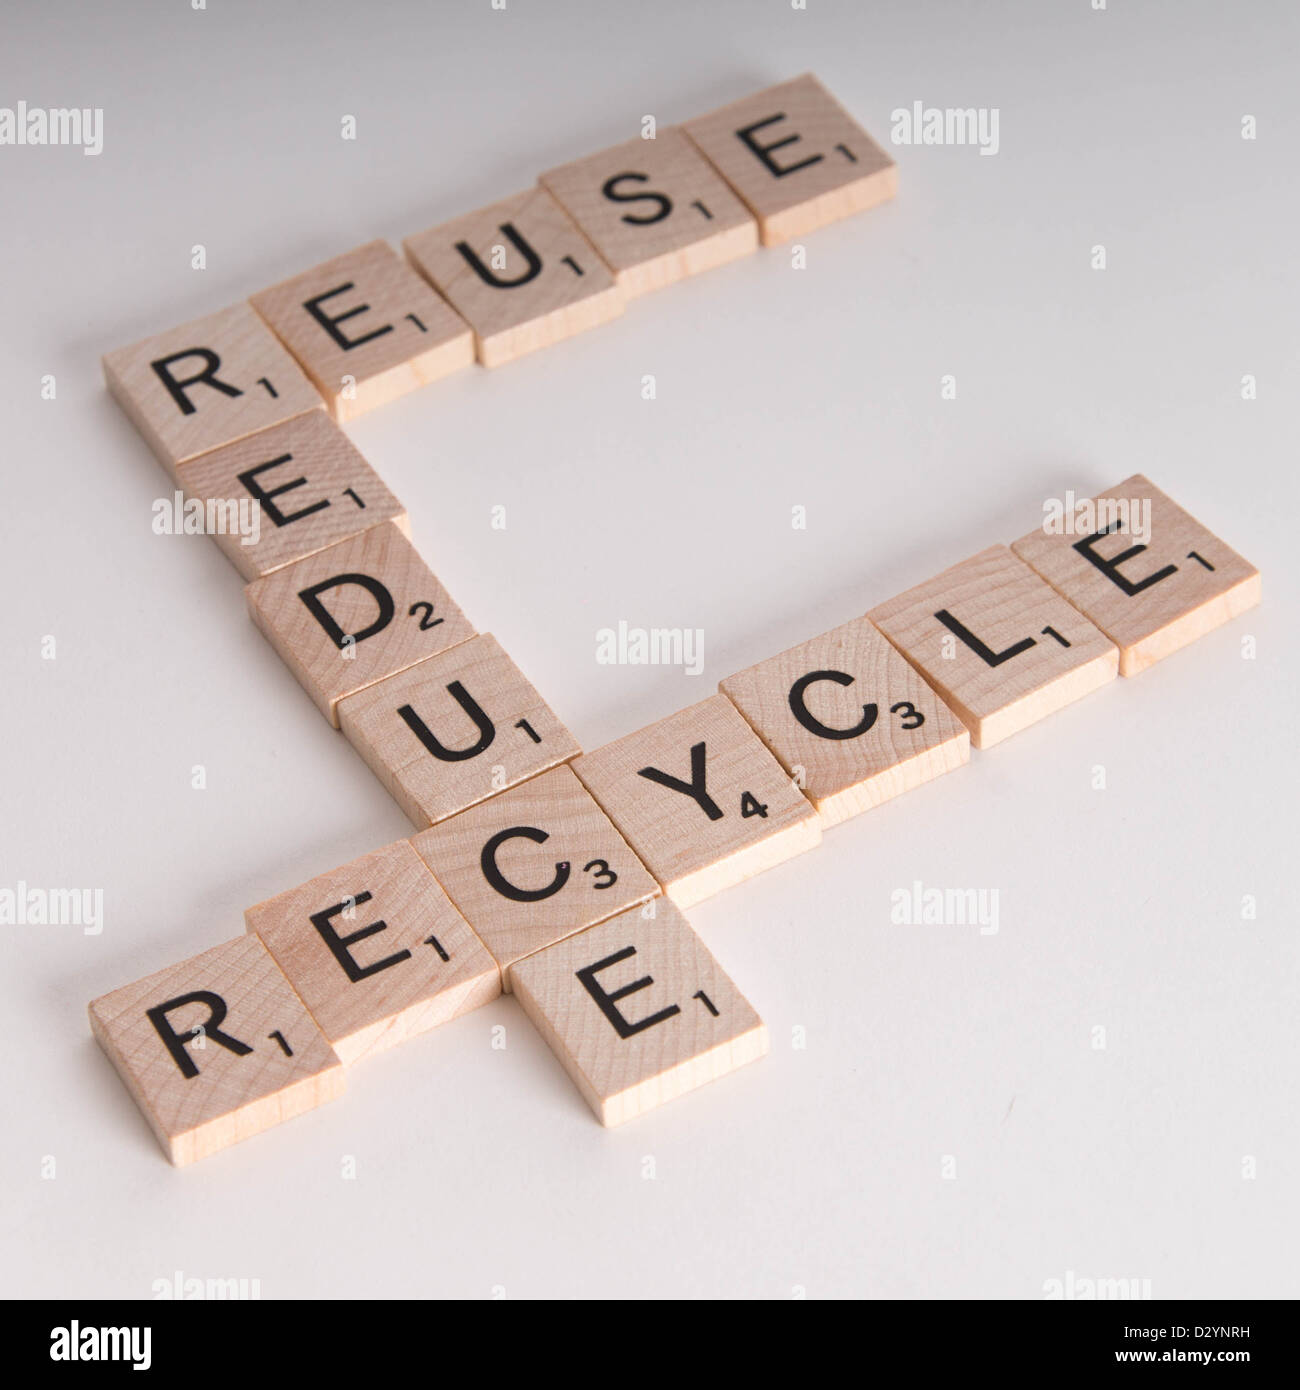 Reduce Reuse Recycle Stock Photos Reduce Reuse Recycle Stock